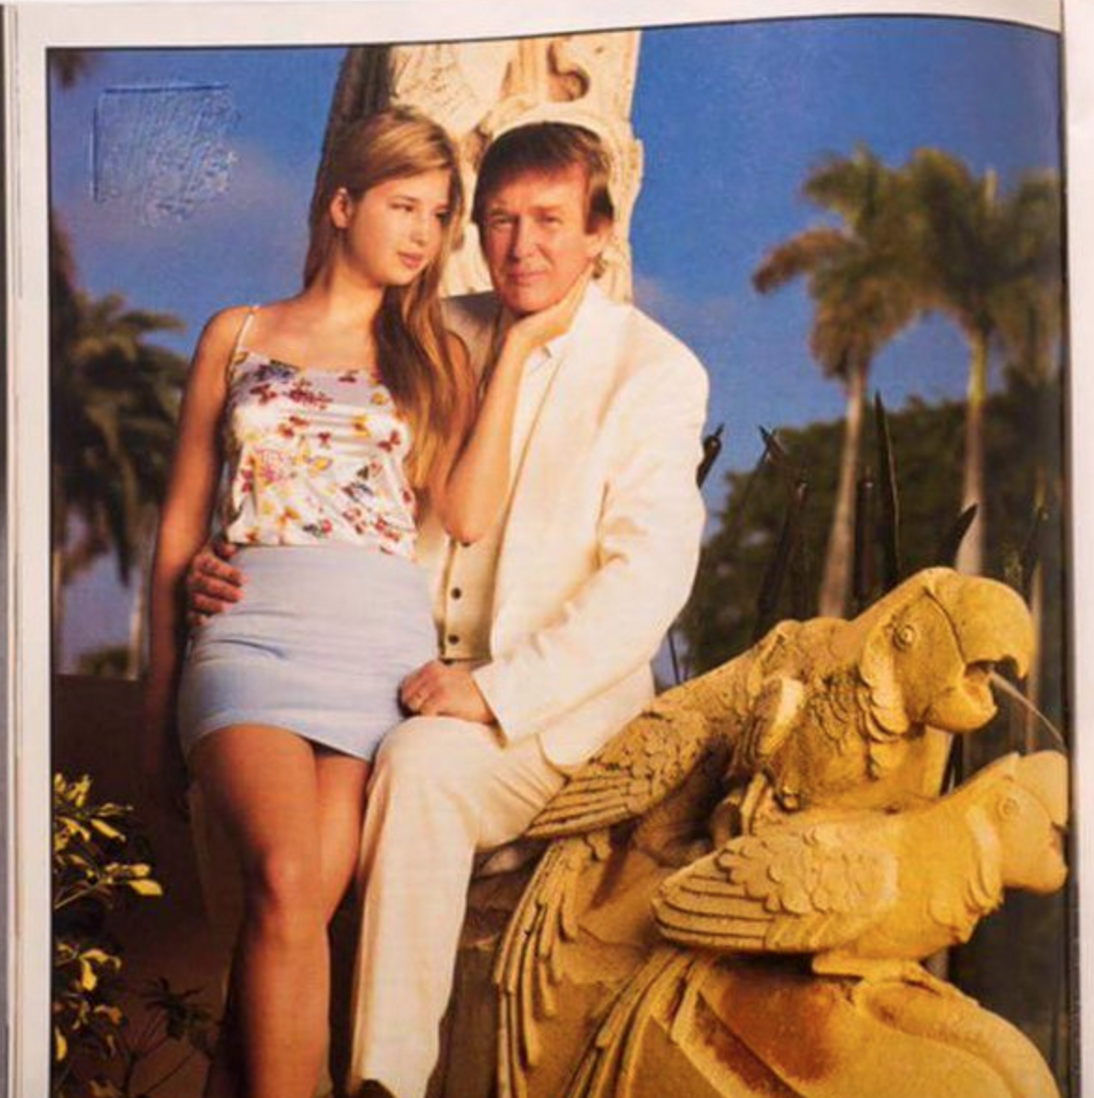 Retro daughter pussy This Pic Of Donald Trump And His Daughter Is Like An Ad For Tropical Incest